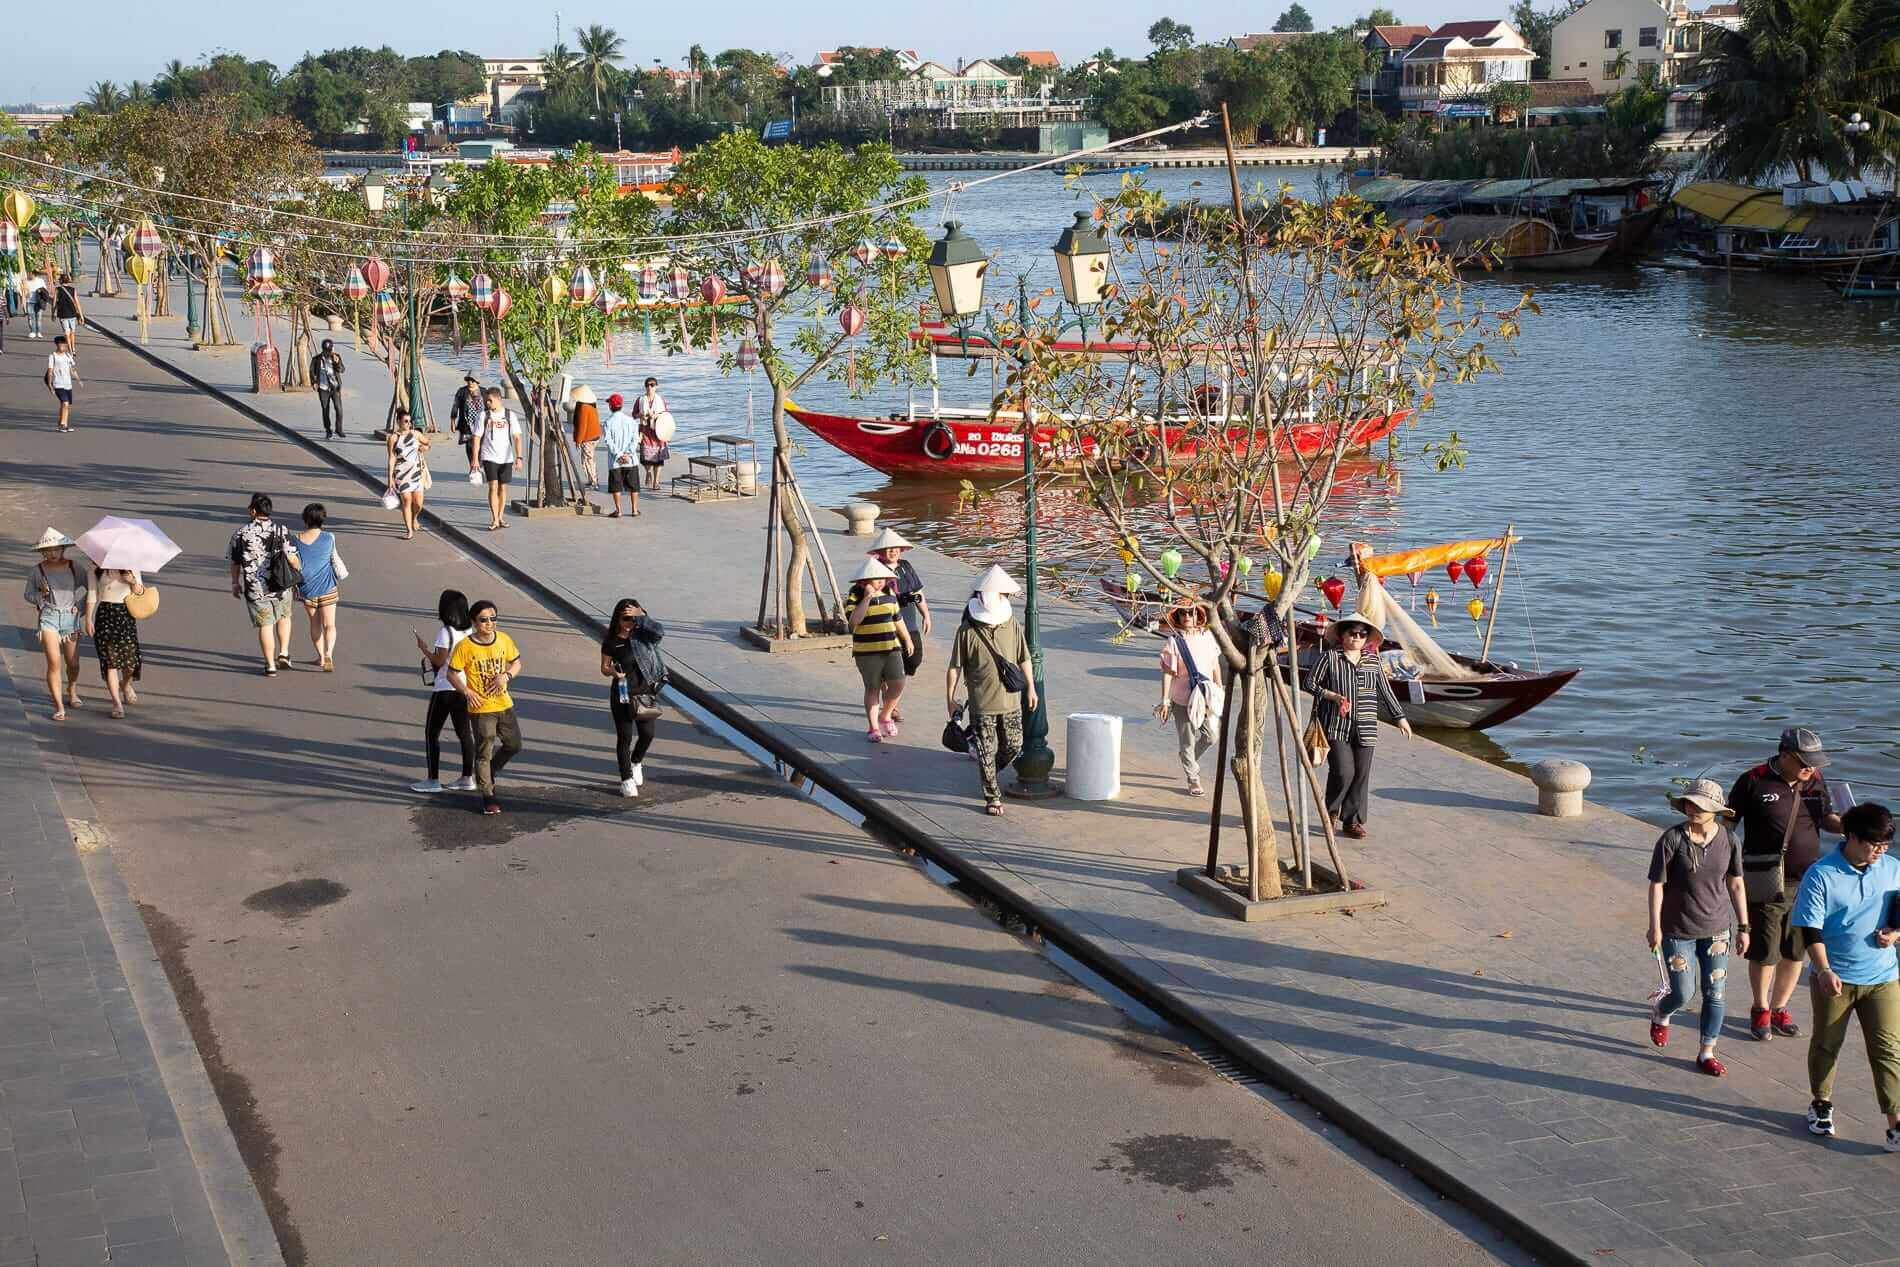 Hoi An riverside - Hoi An Shopping Guide